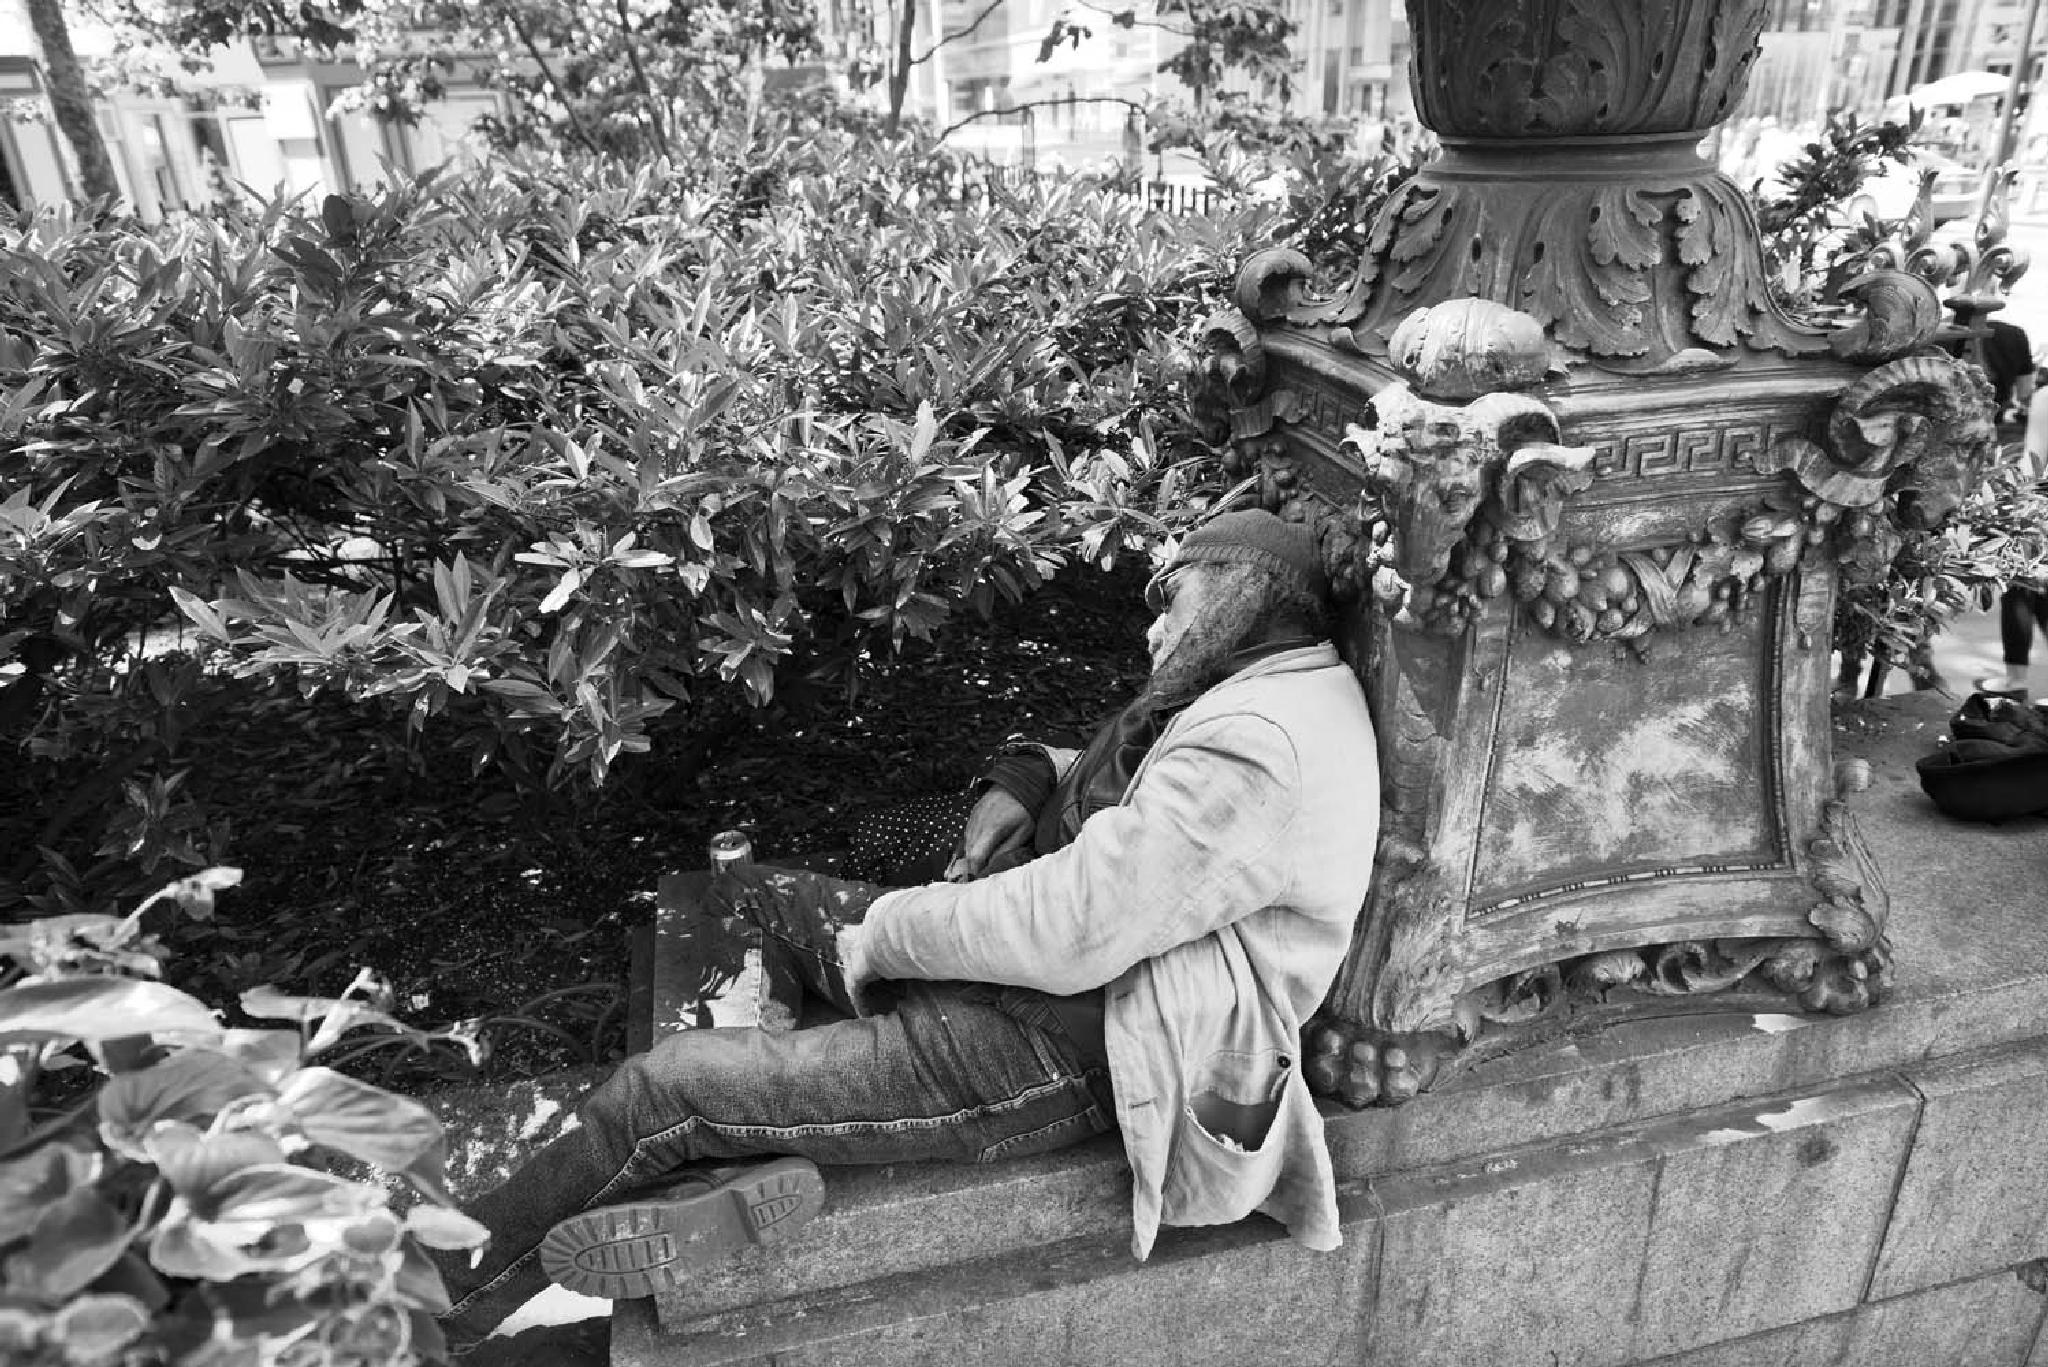 Sleeping in Bryant Park by bhlevy